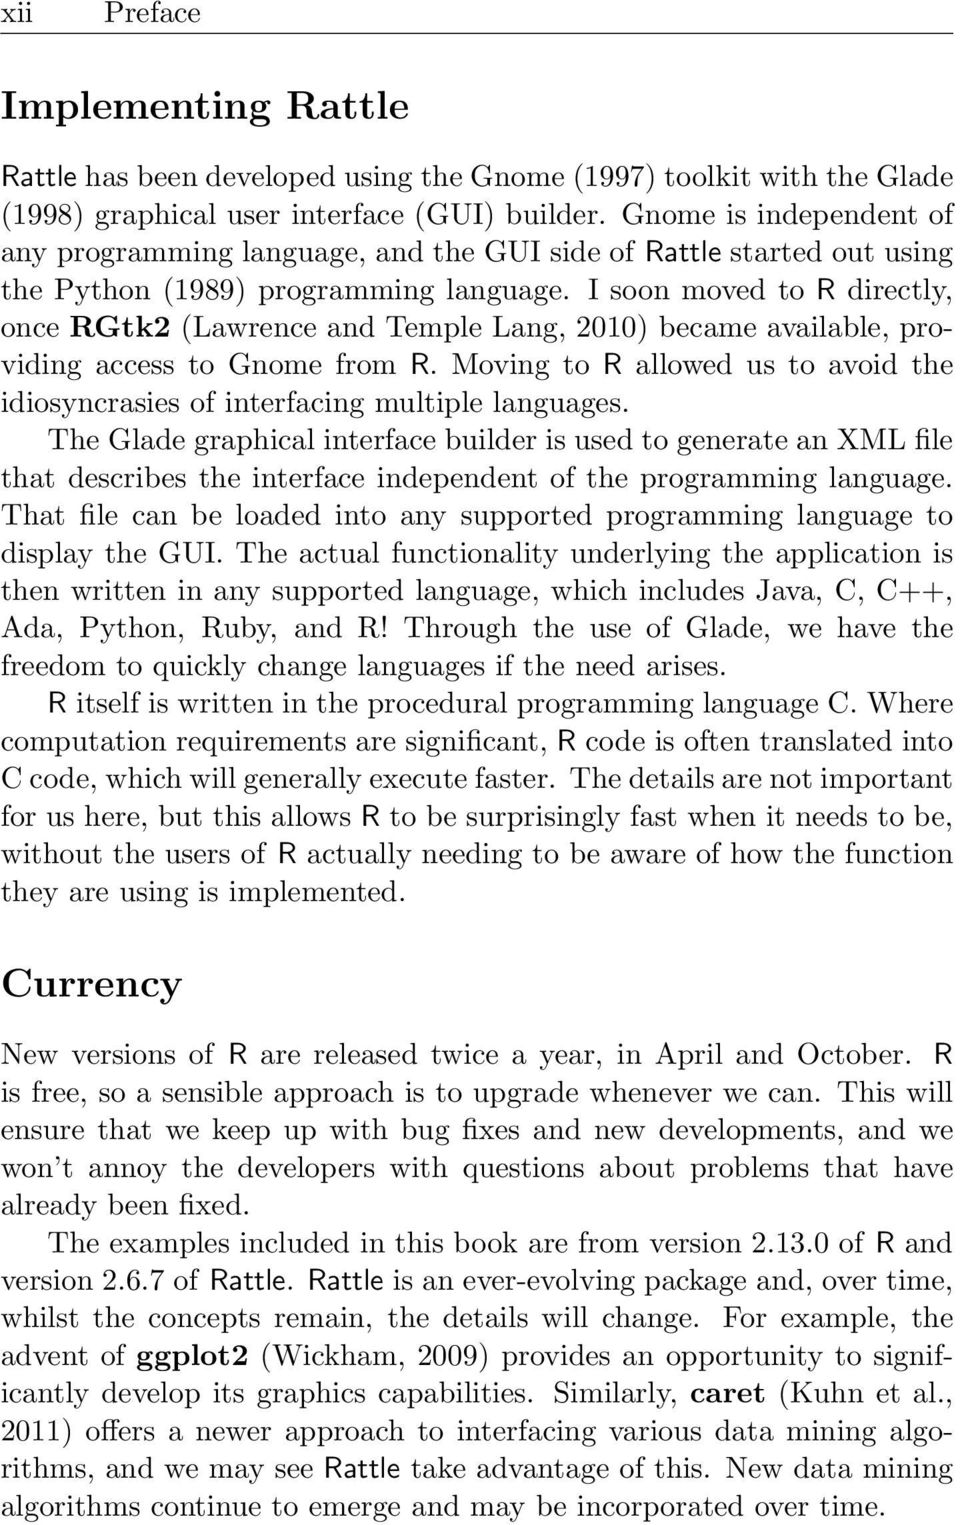 I soon moved to R directy, once RGtk2 (Lawrence and Tempe Lang, 2010) became avaiabe, providing access to Gnome from R. Moving to R aowed us to avoid the idiosyncrasies of interfacing mutipe anguages.